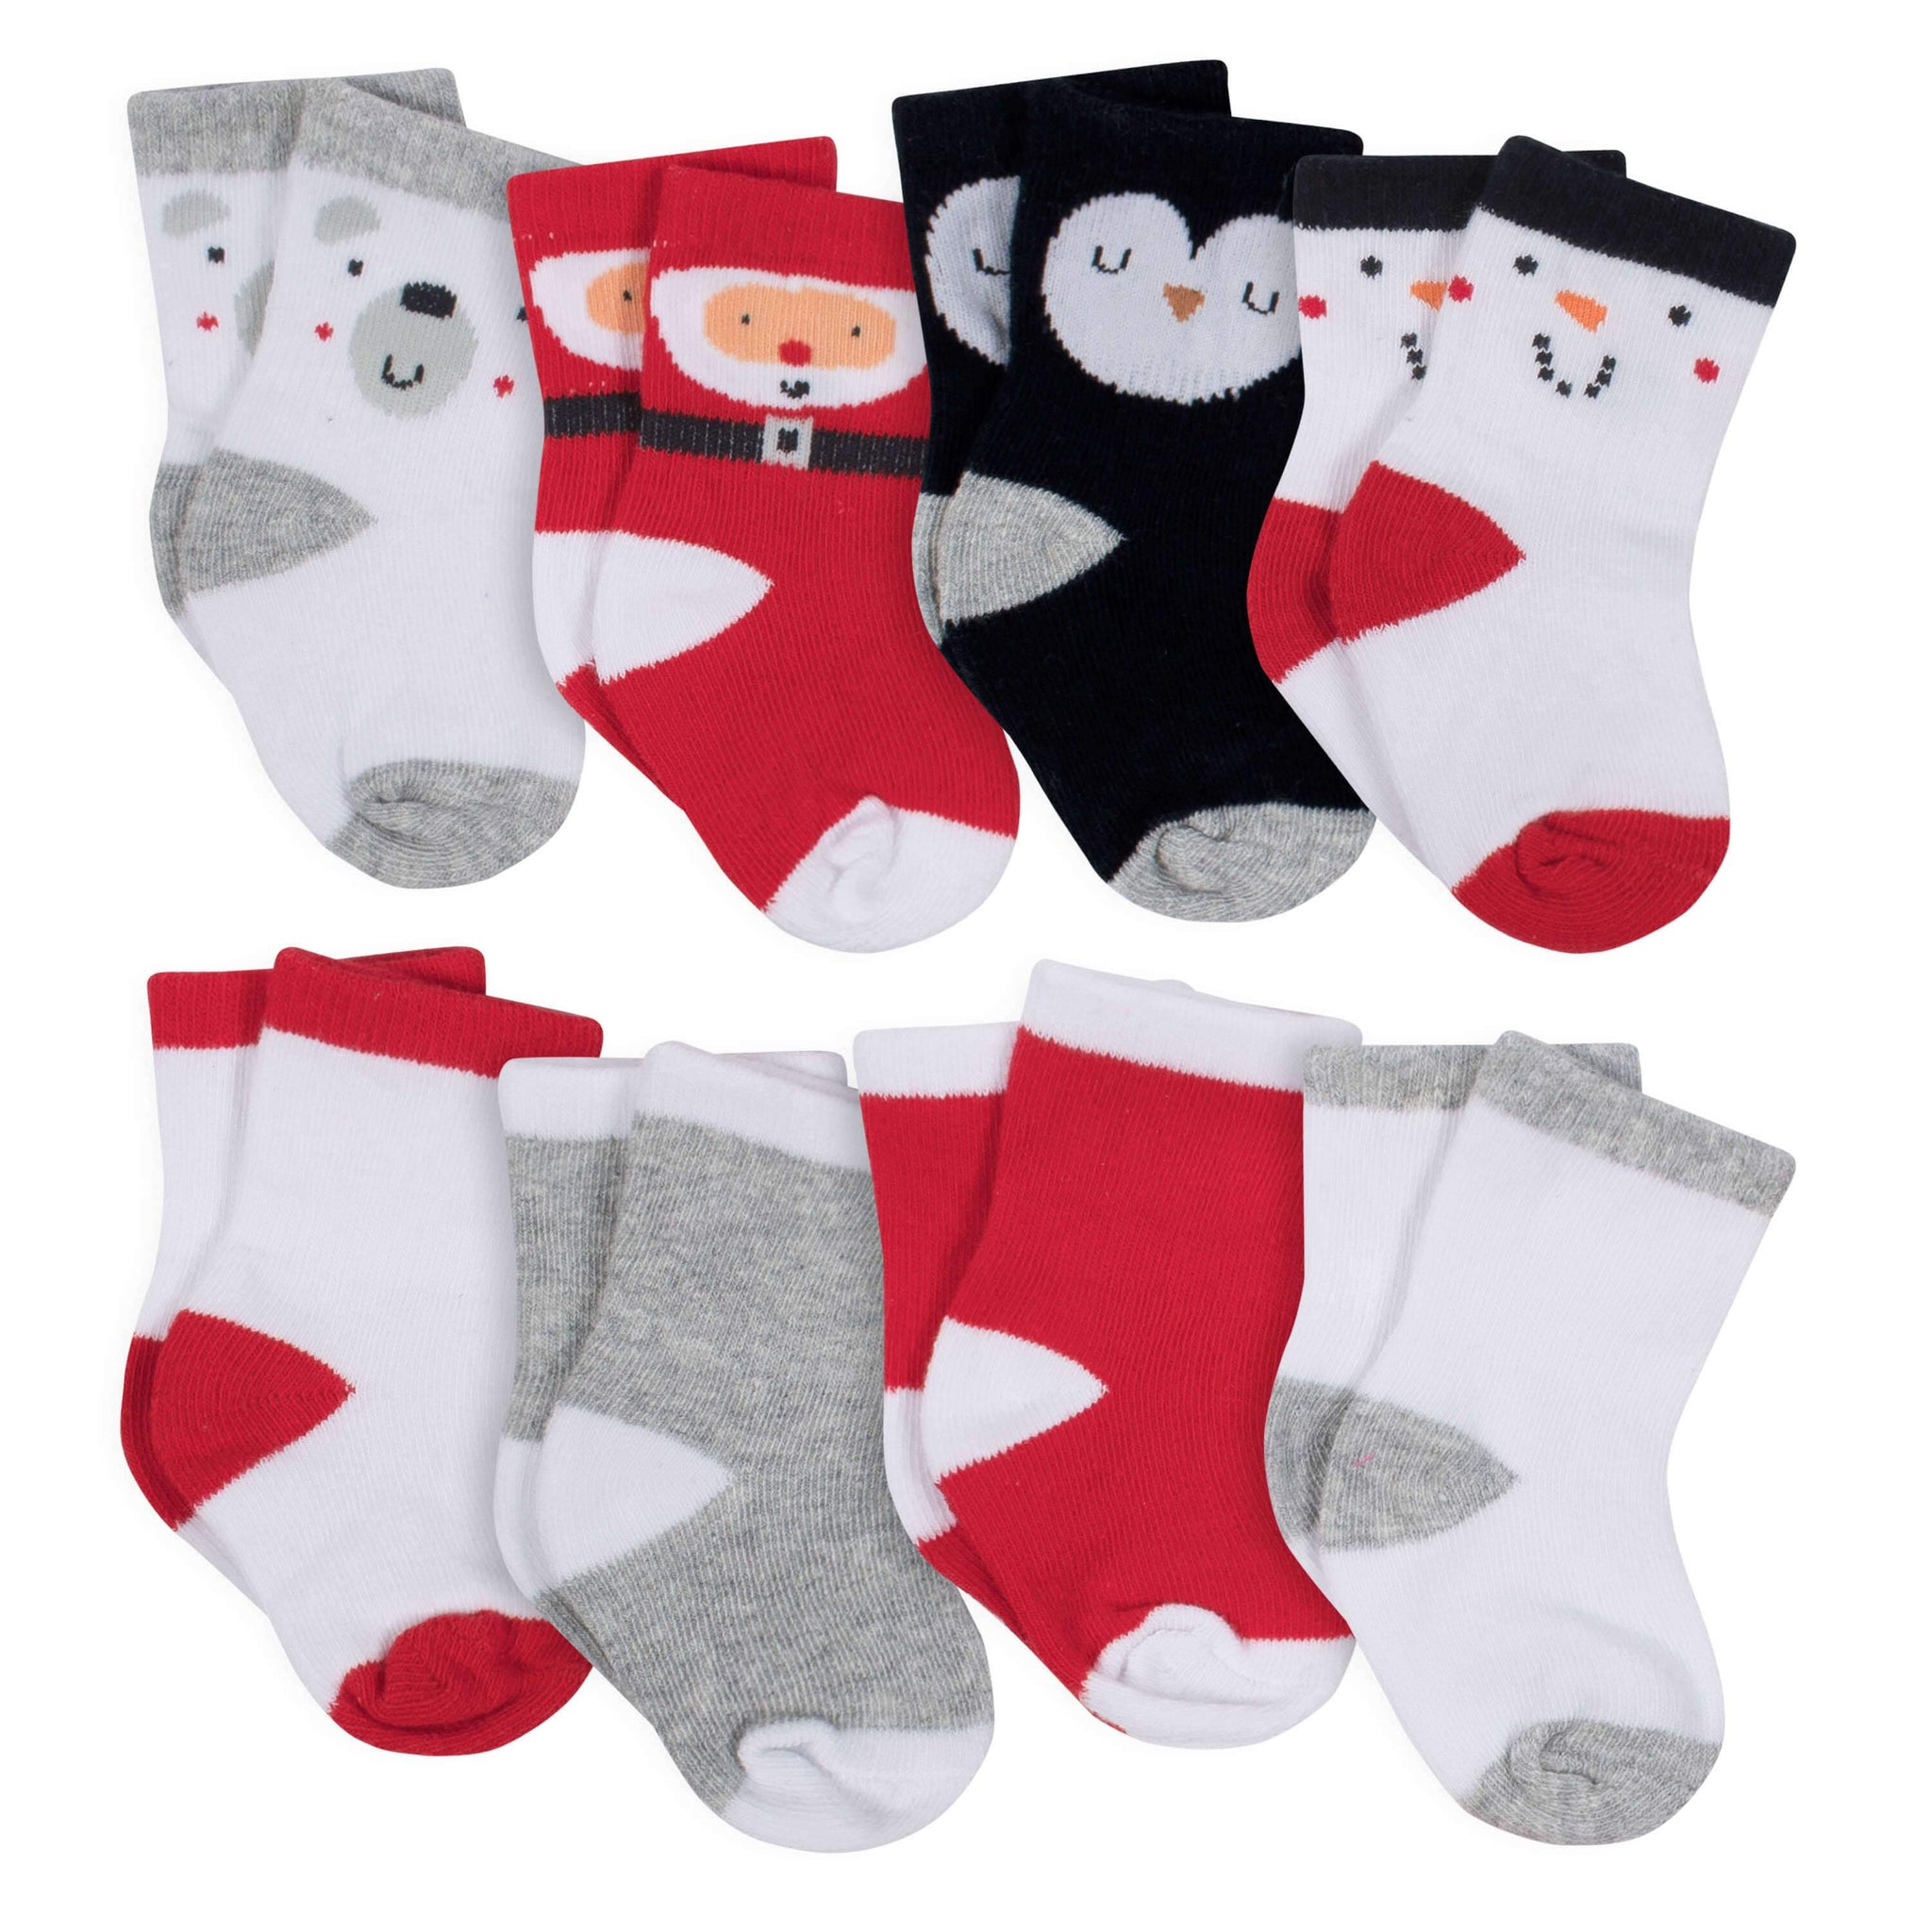 8-Pack Neutral Wiggle Proof Stay On Socks - Holiday